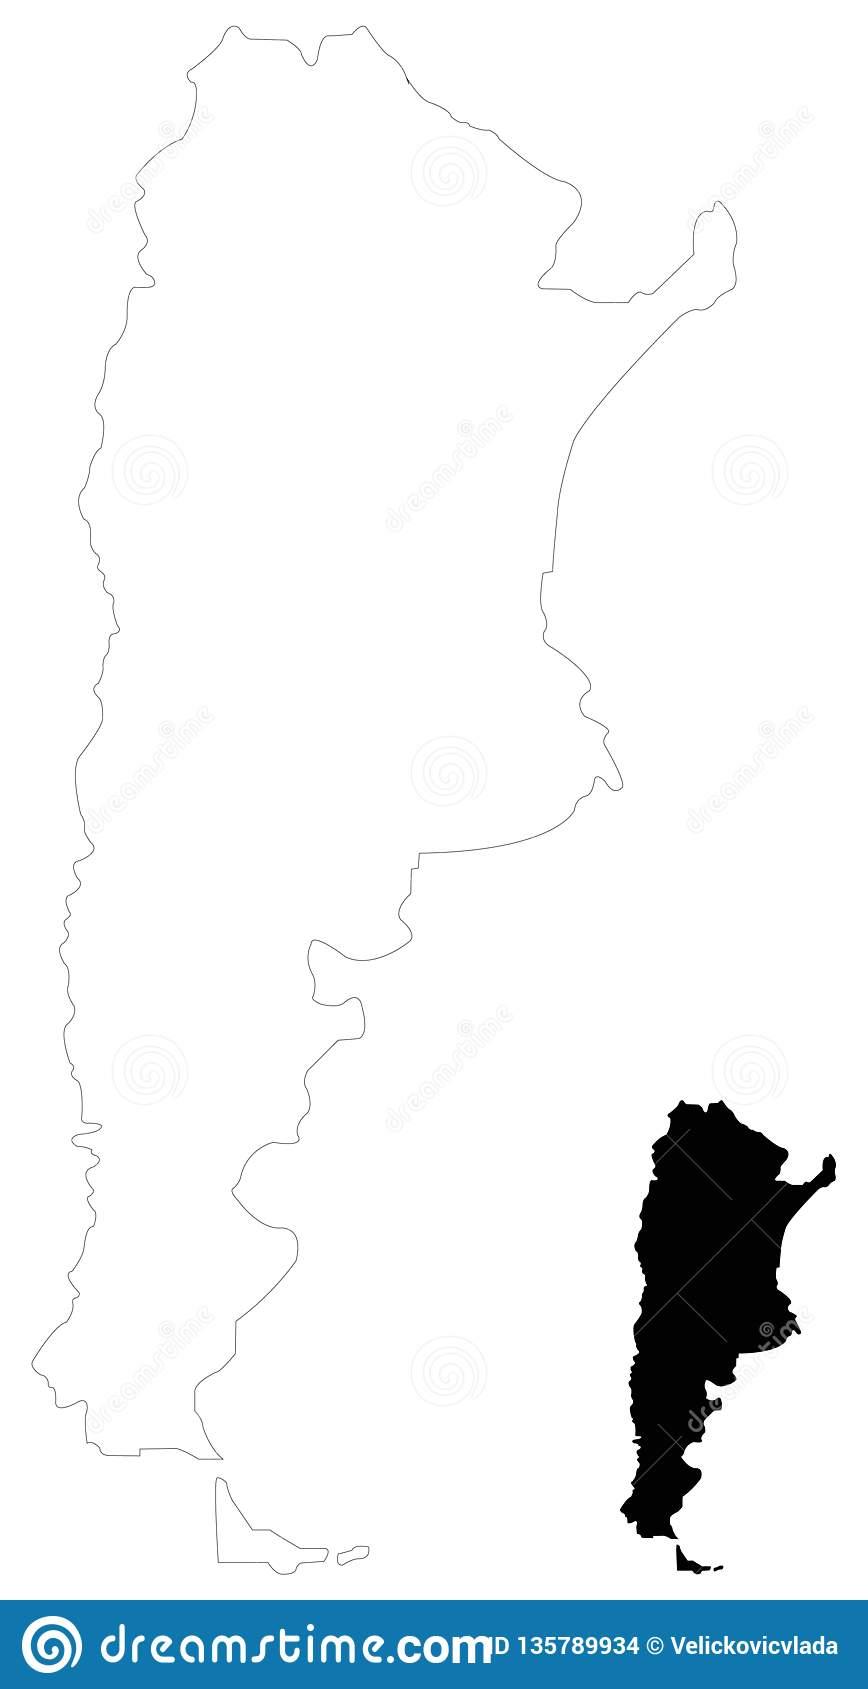 Argentina Map - Argentine Republic, Country In South America ... on